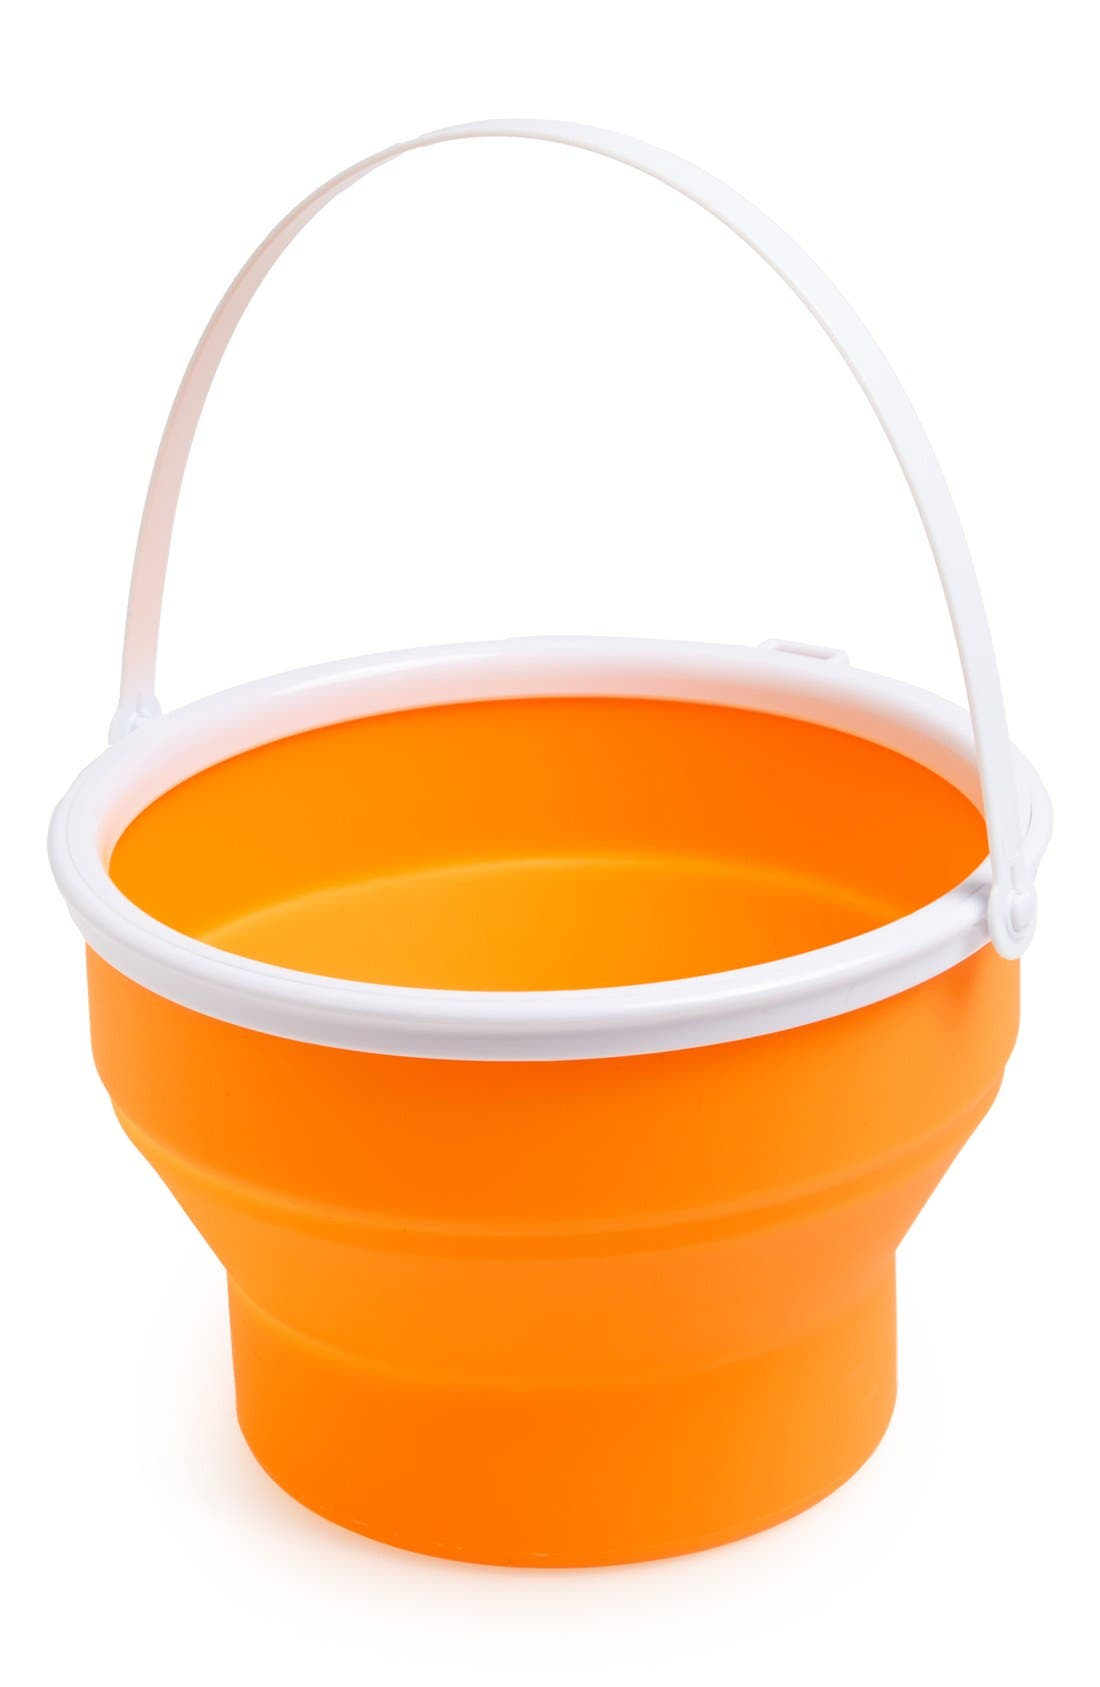 COLLAPSE A PAIL,                             Collapsible Sand Bucket,                             Main thumbnail 1, color,                             800